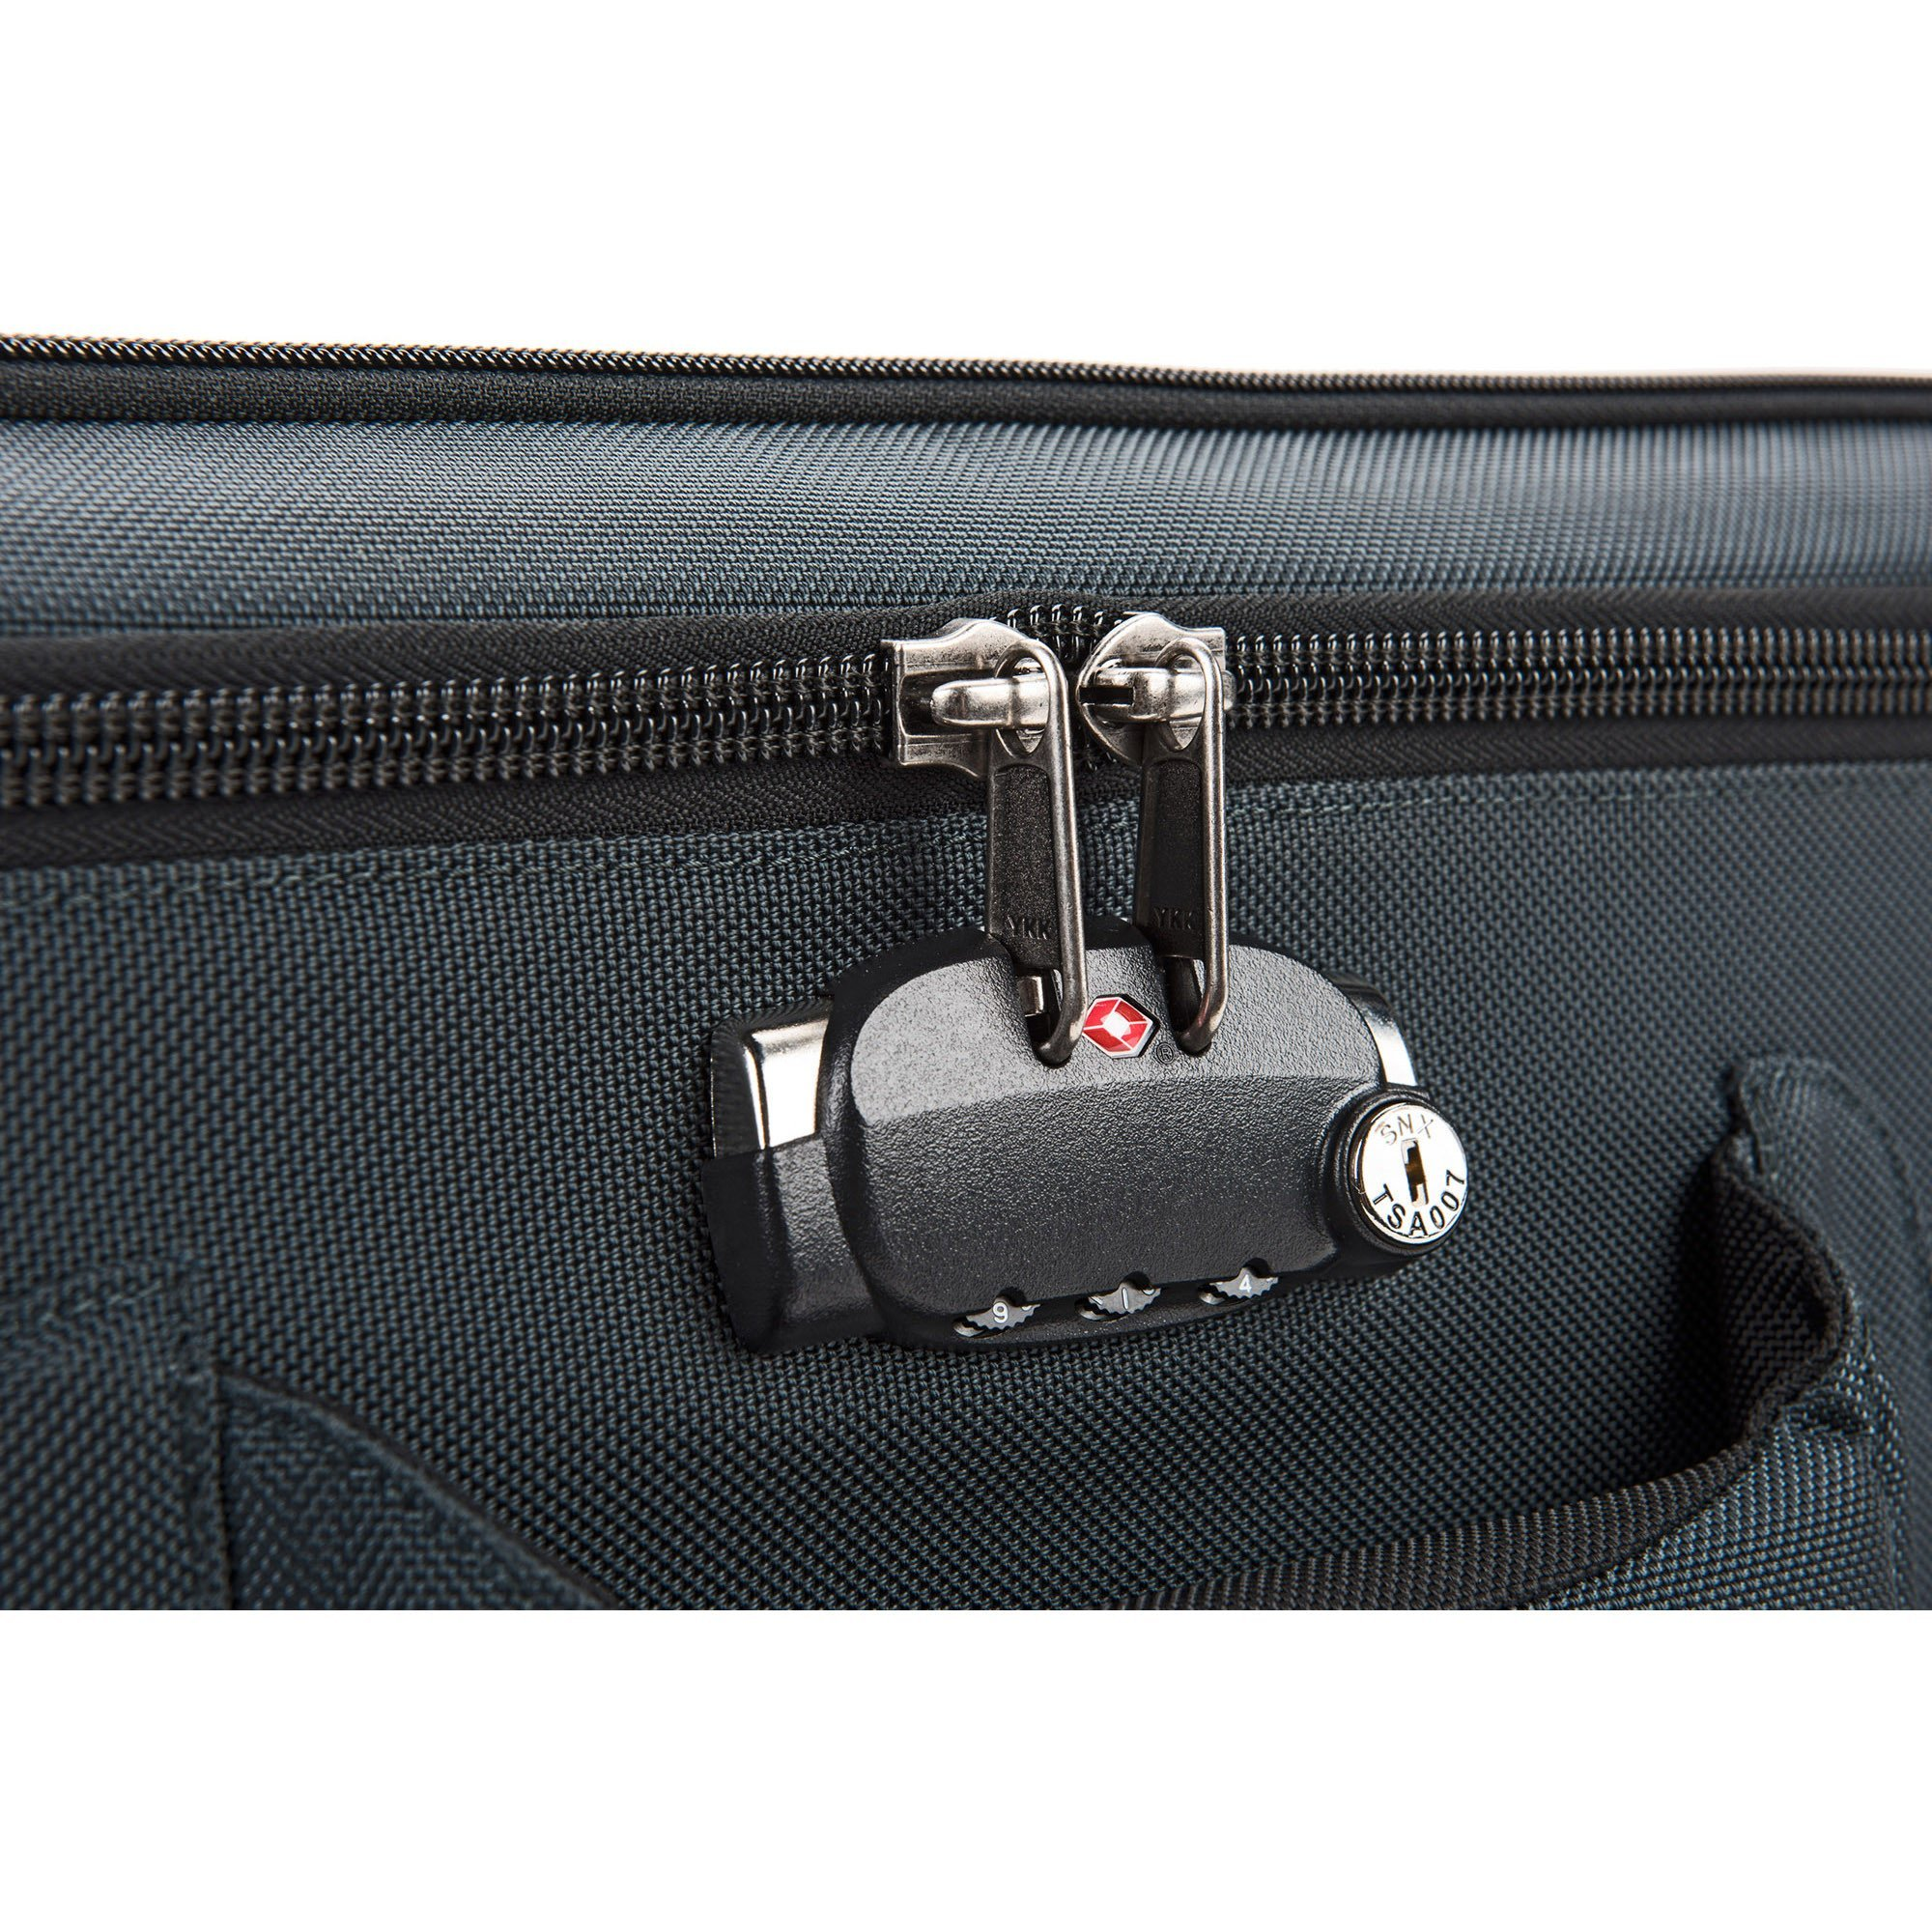 Think Tank Photo Video Transport 20 Carry-On Case (Pacific Slate) by Think Tank (Image #9)